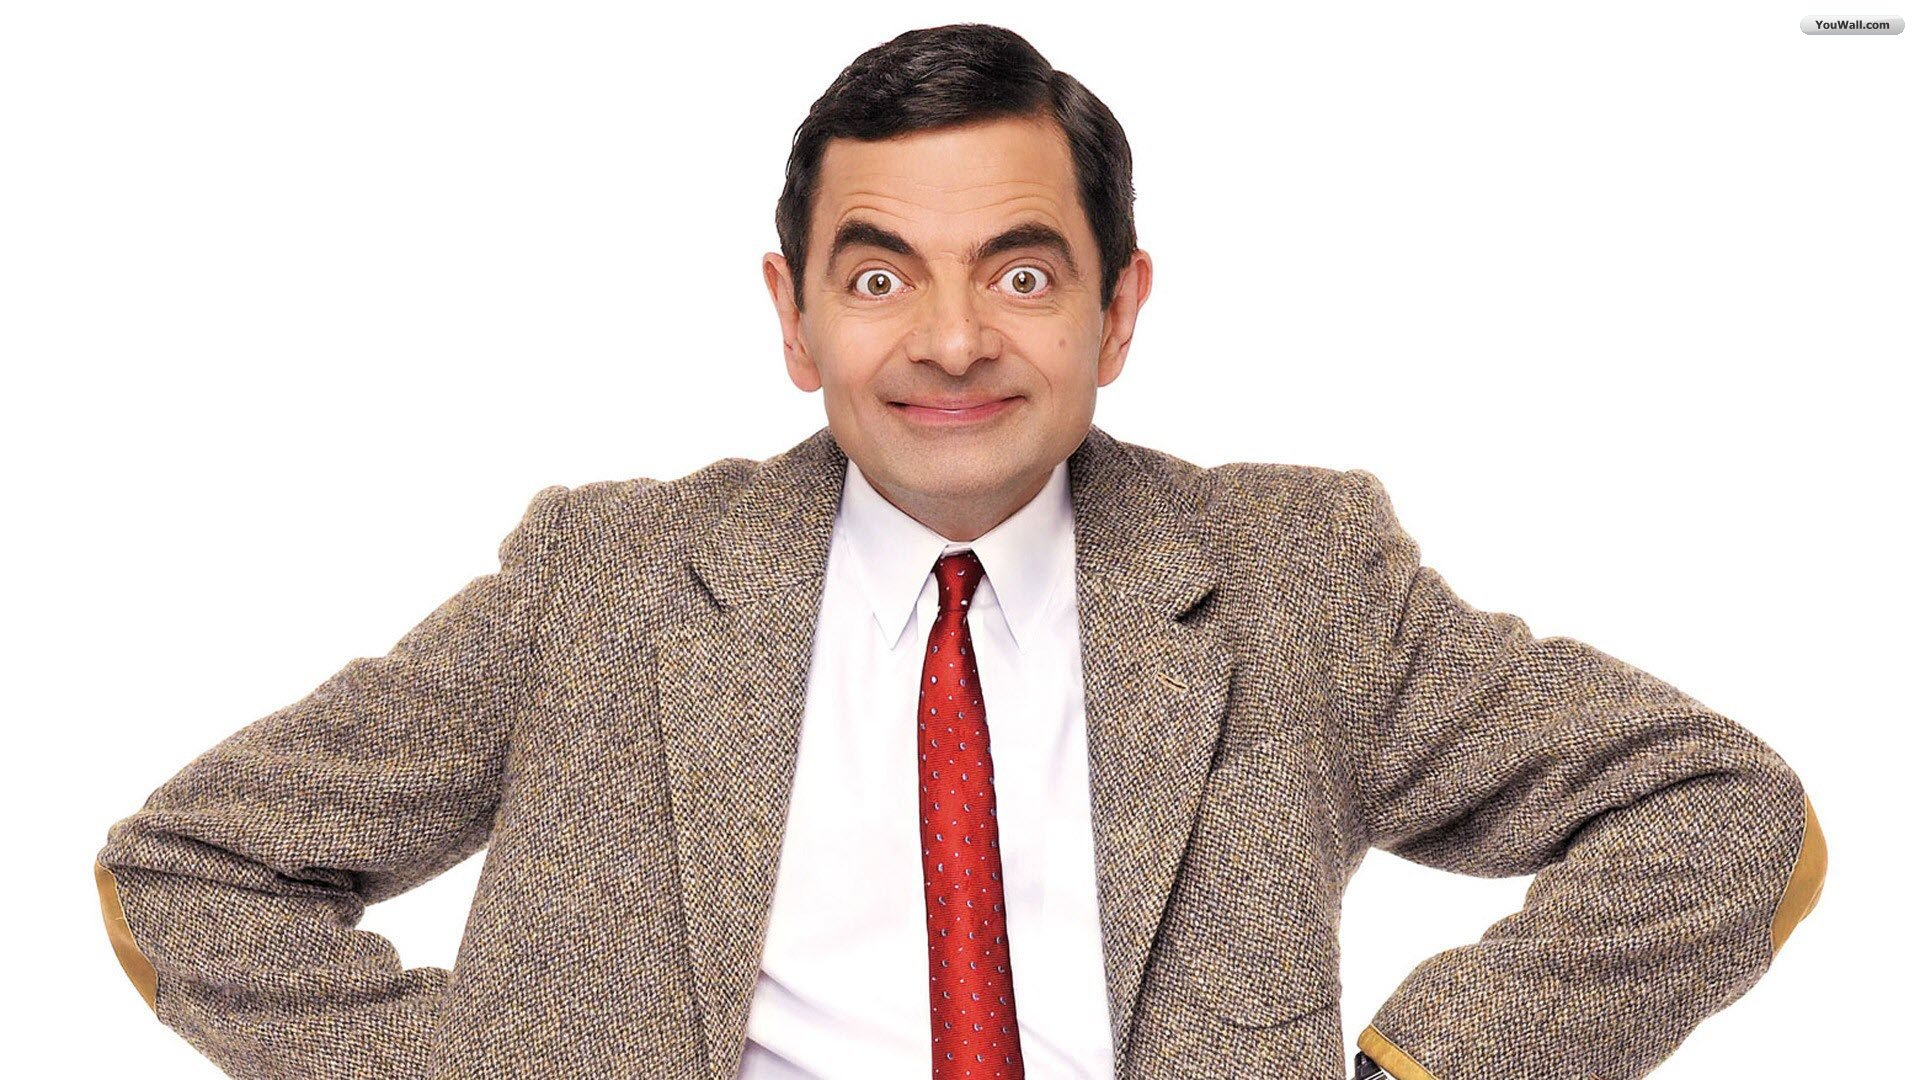 Mr Bean Wallpaper